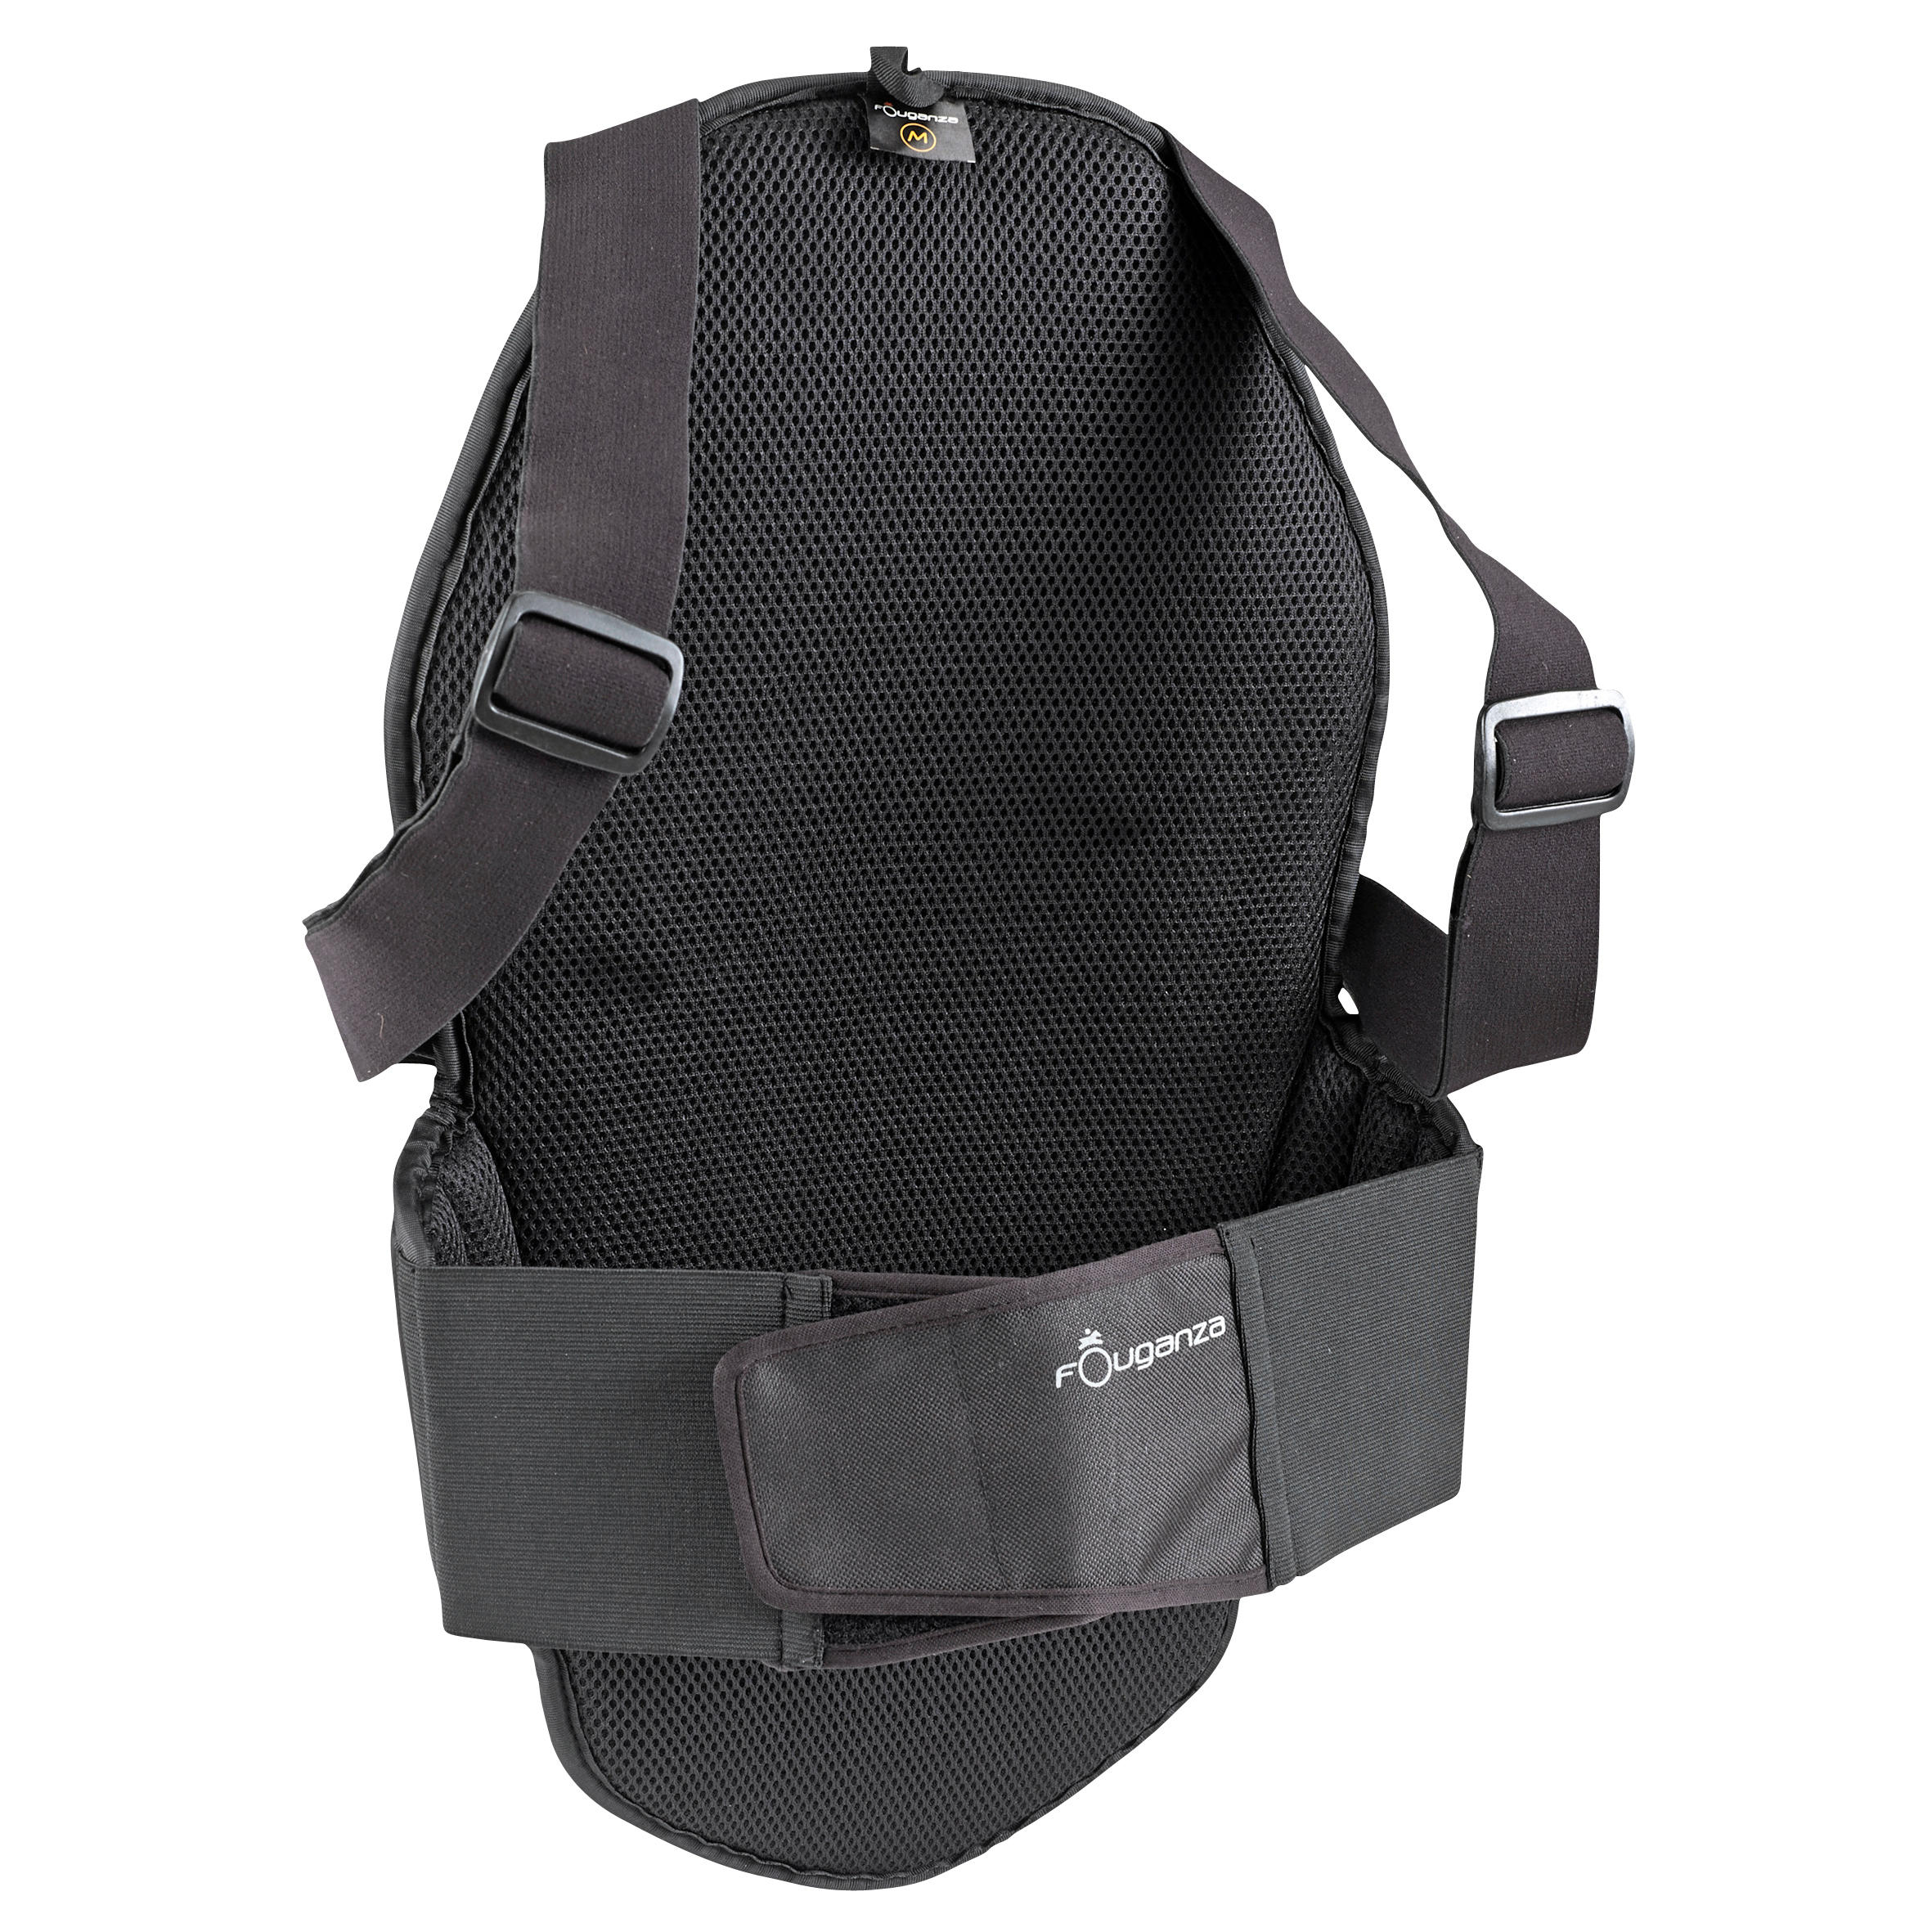 Adult Horse Riding Safety Dorsal Shell- Black